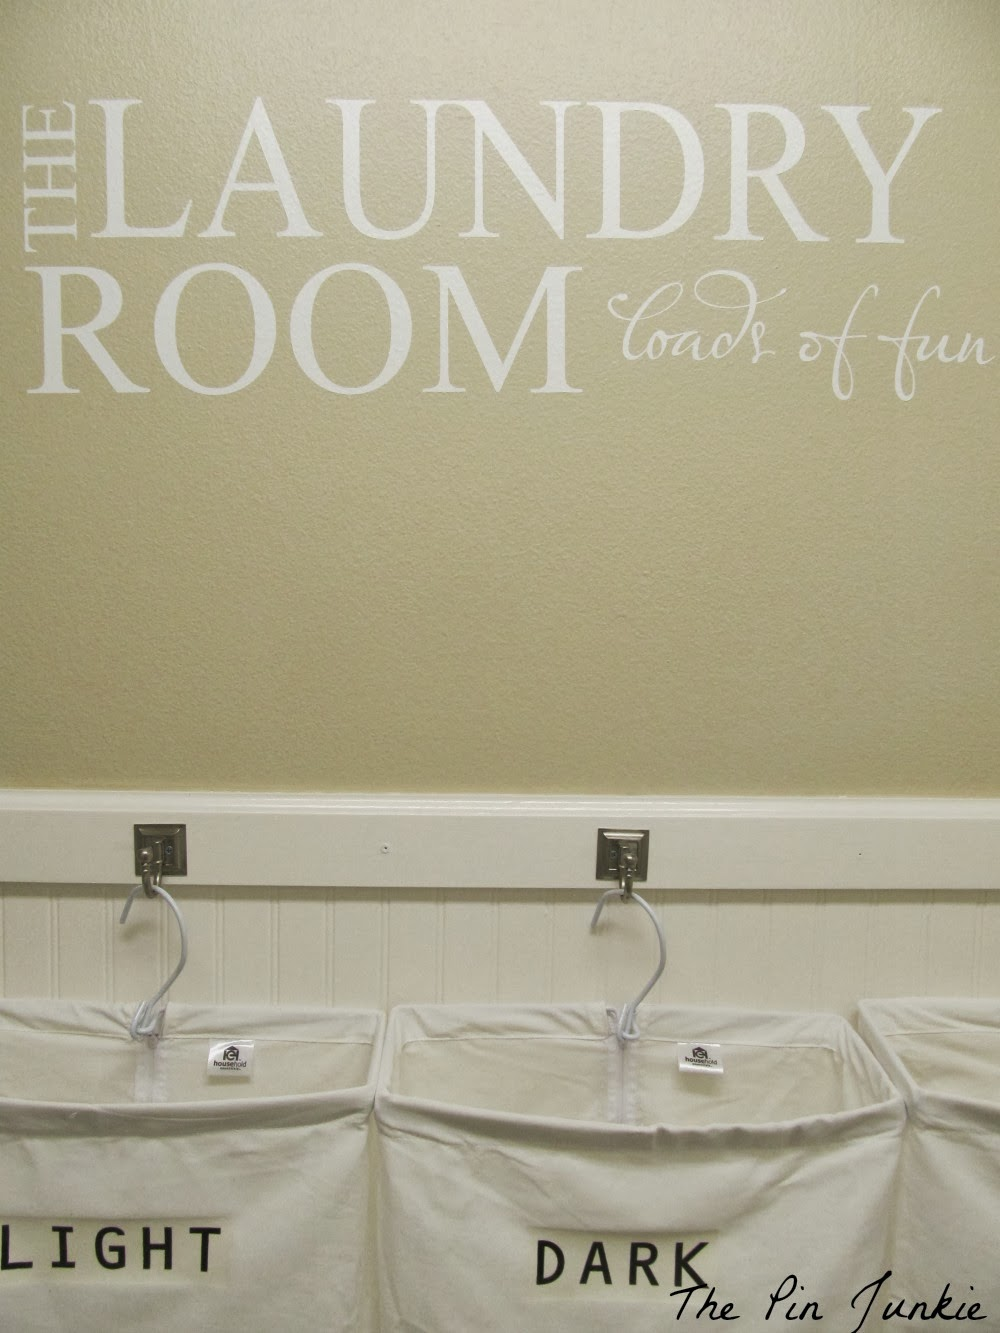 Fabulous laundry room makeover with vinyl decal The Pin Junkie featured on Remodelaholic